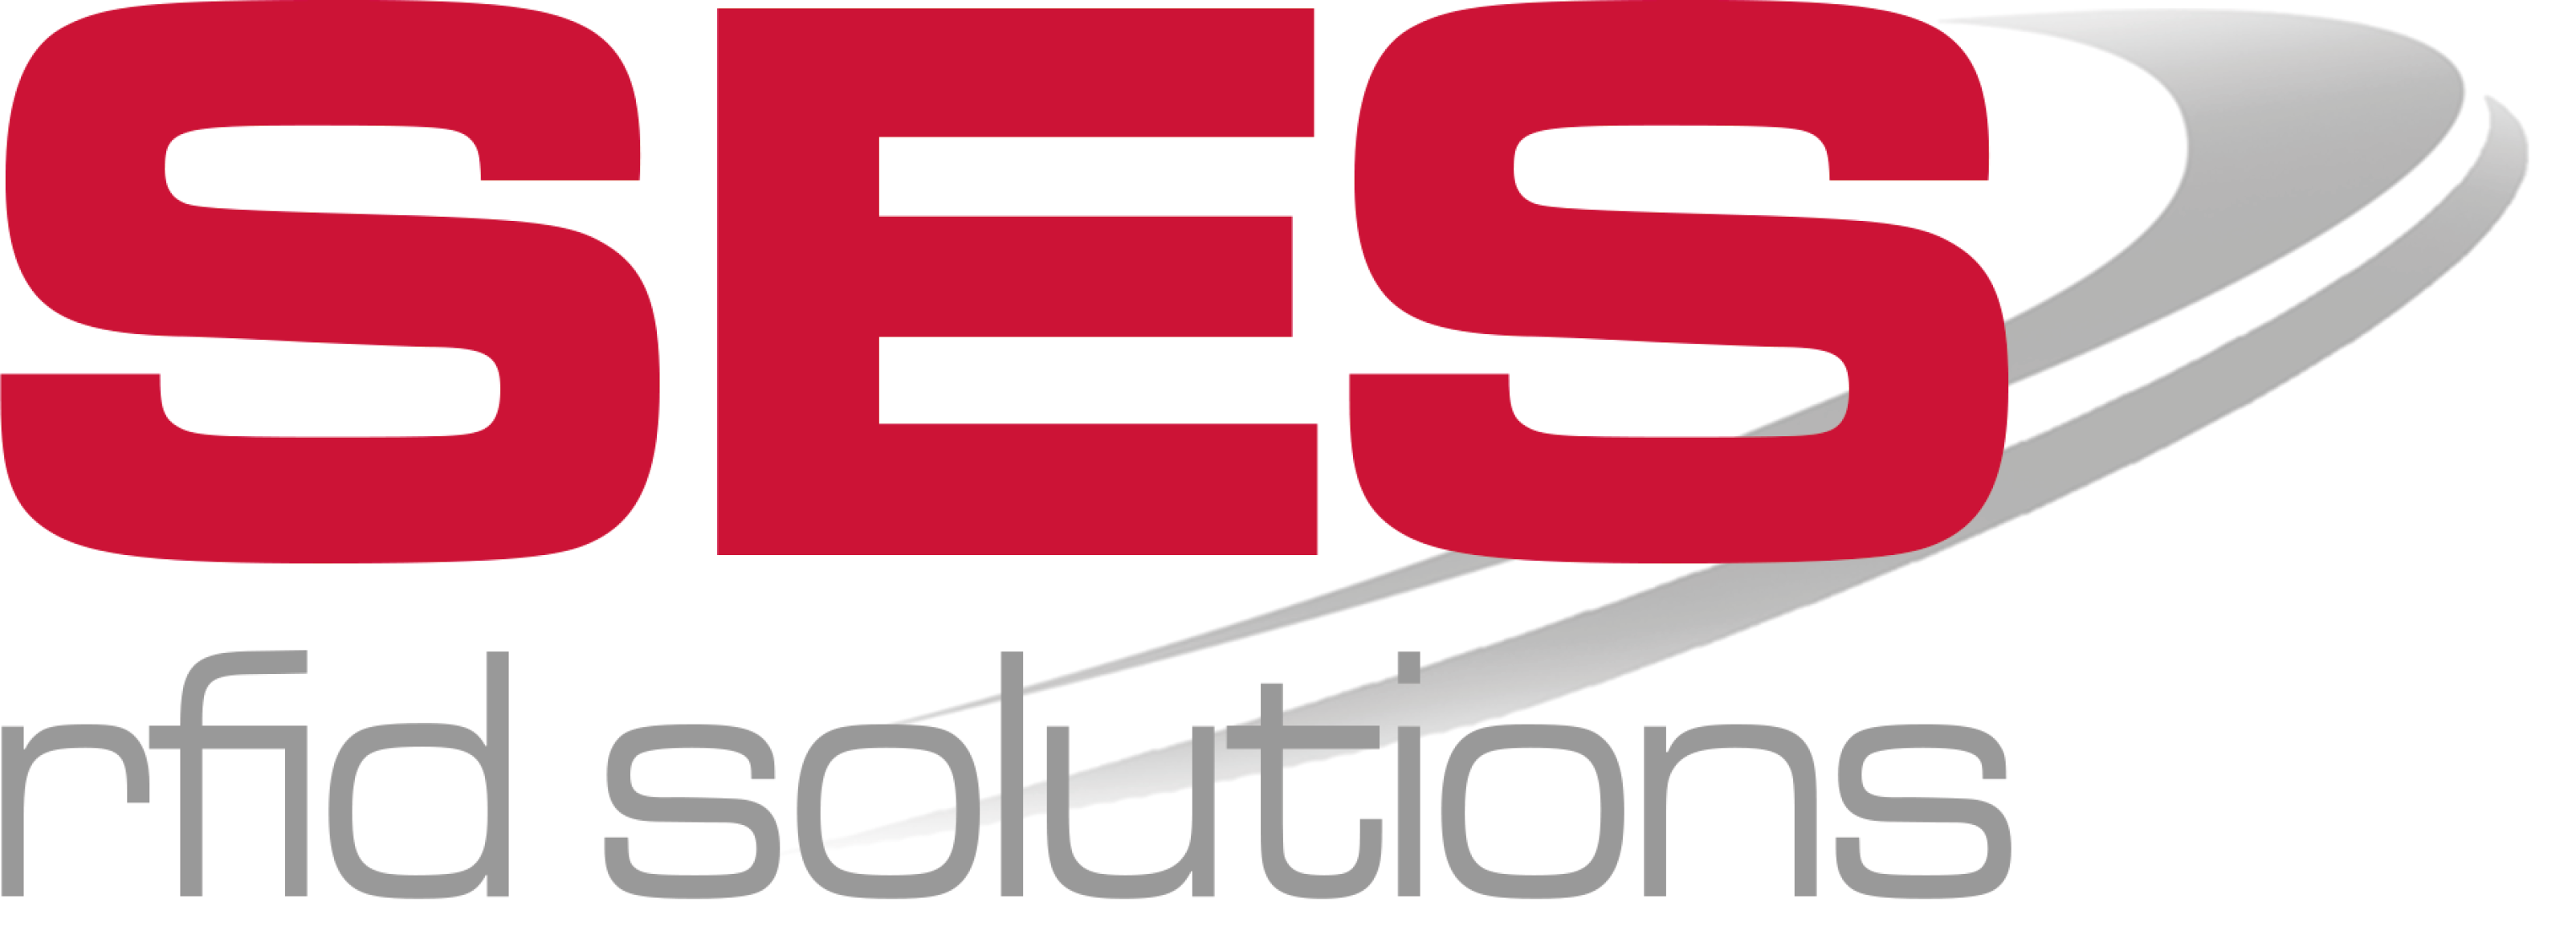 SES RFID Solutions GmbH